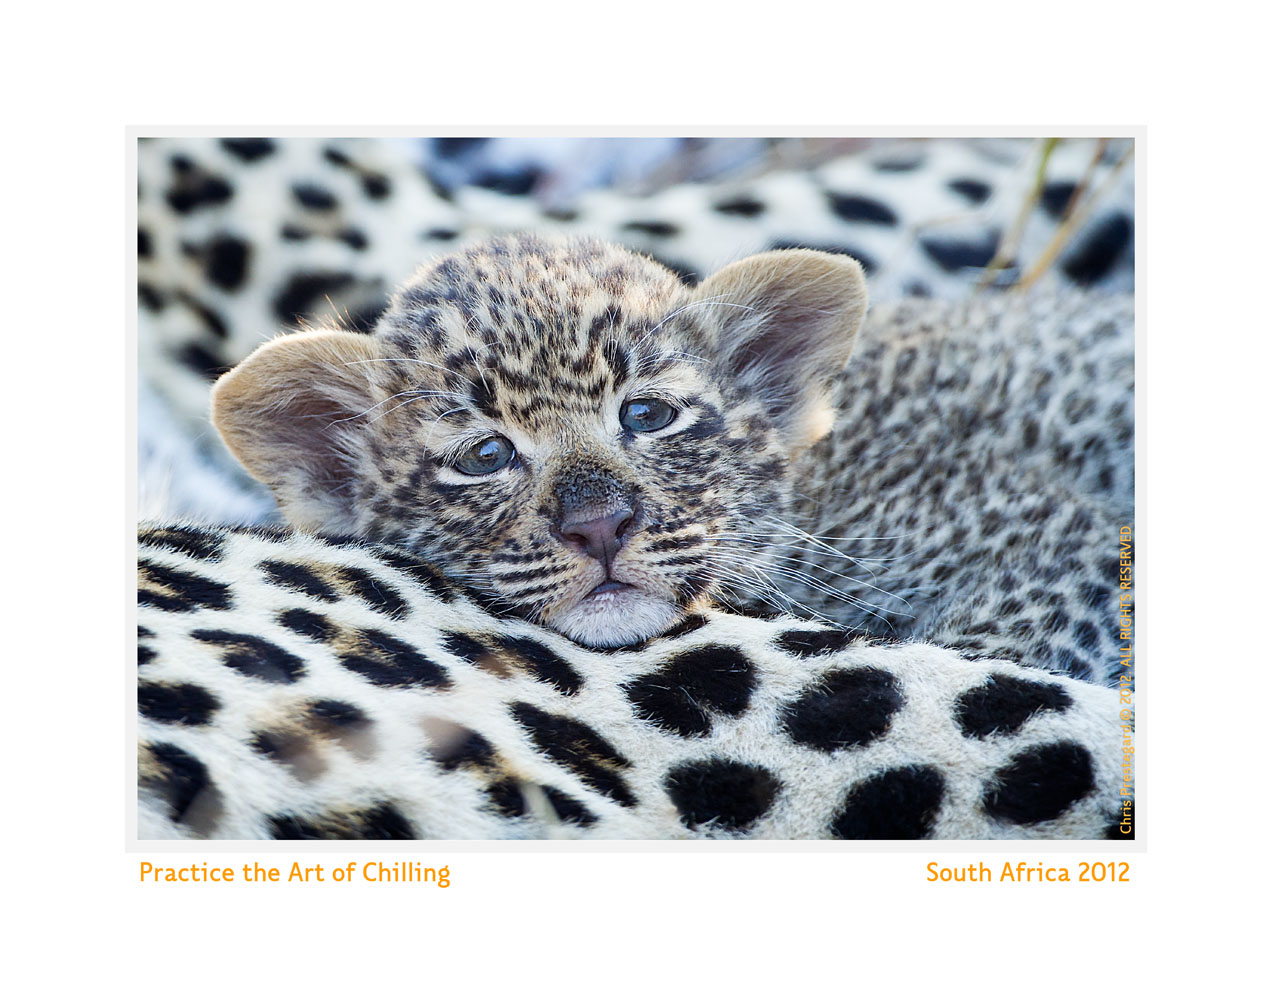 LeopardCub2977-Oct5-2013